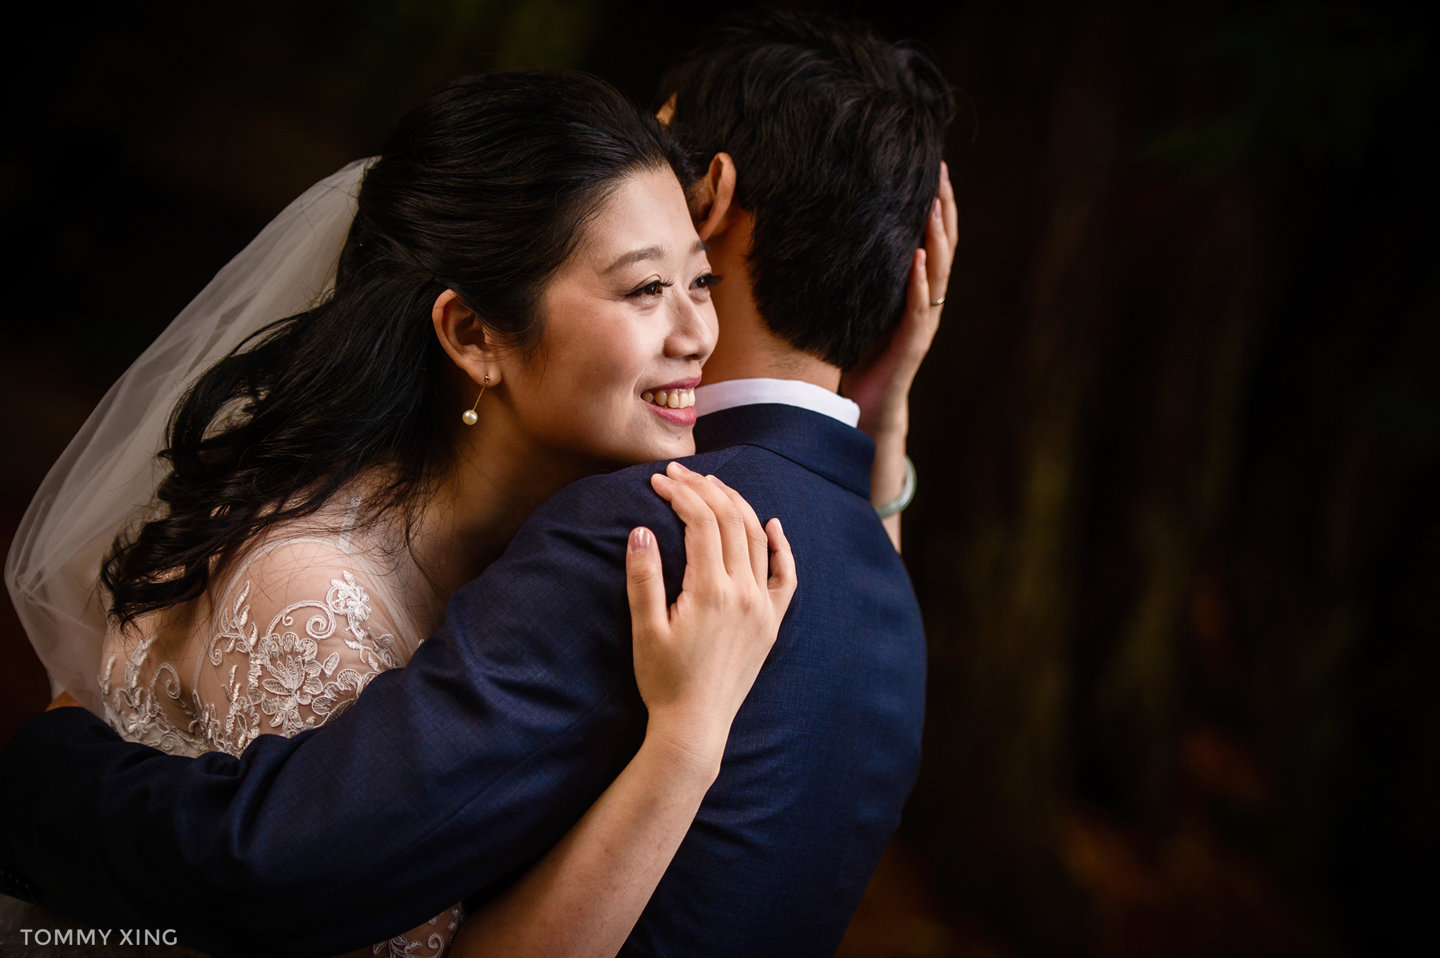 San Francisco Wedding Photography Valley Presbyterian Church WEDDING Tommy Xing Photography 洛杉矶旧金山婚礼婚纱照摄影师101.jpg